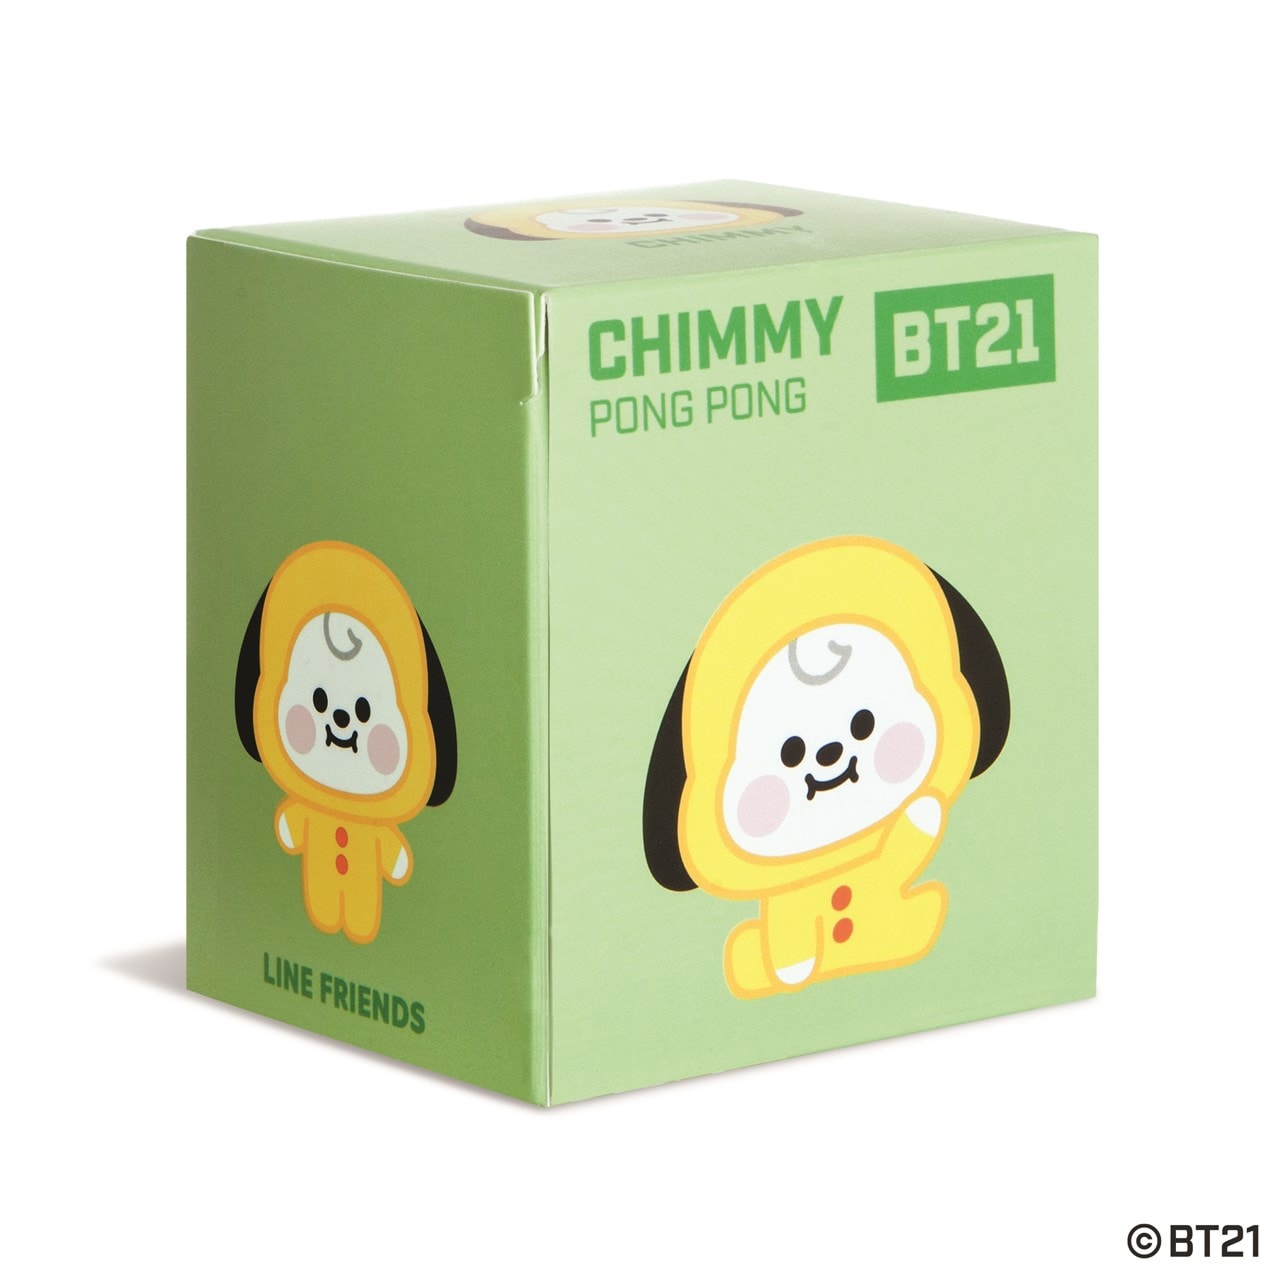 Chimmy Baby Pong Pong: BT21 Soft Toy - 3